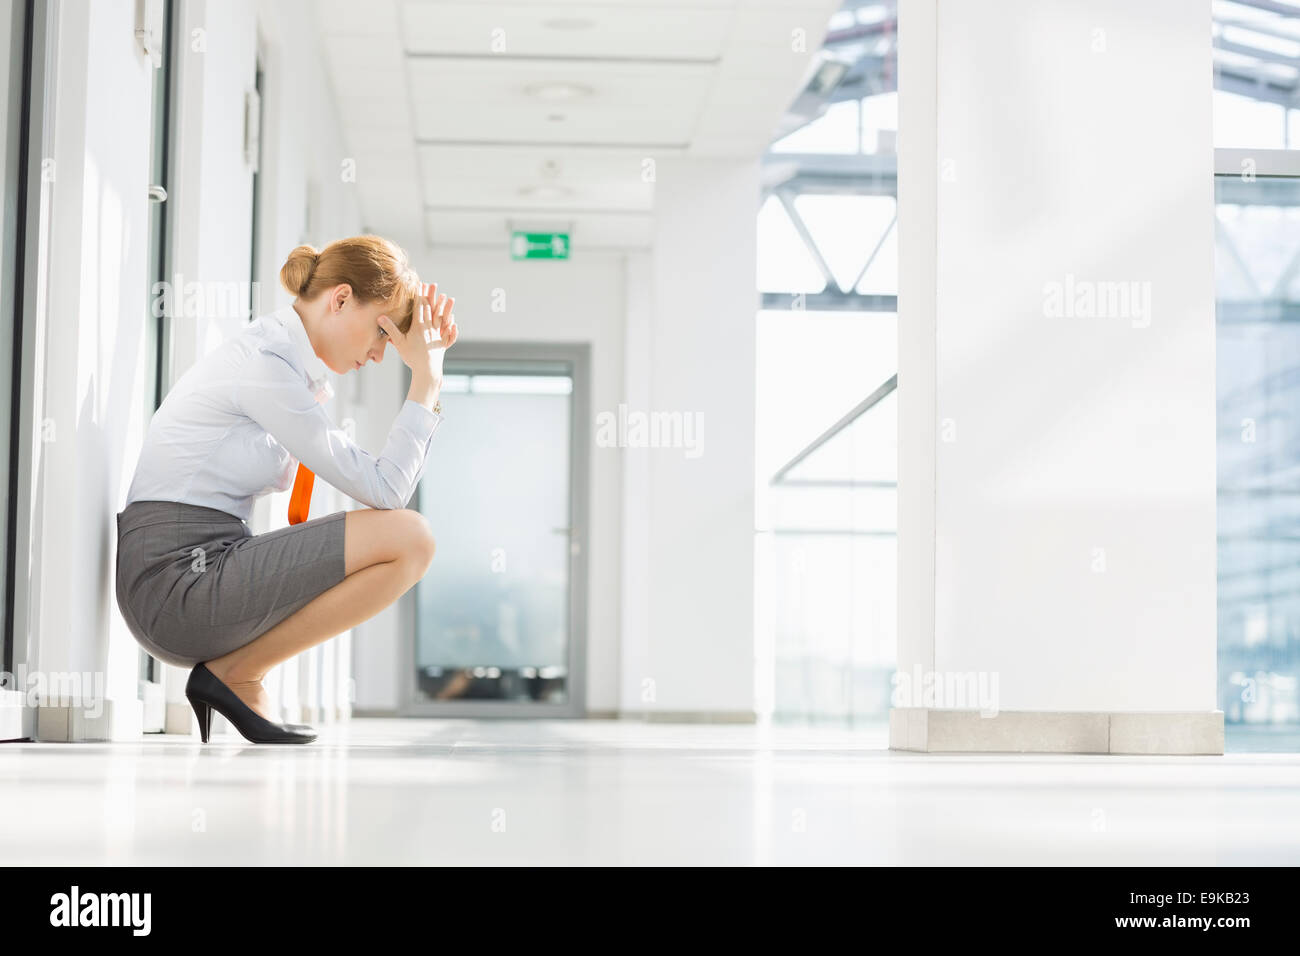 Full-length side view of stressed businesswoman crouching at office hallway - Stock Image